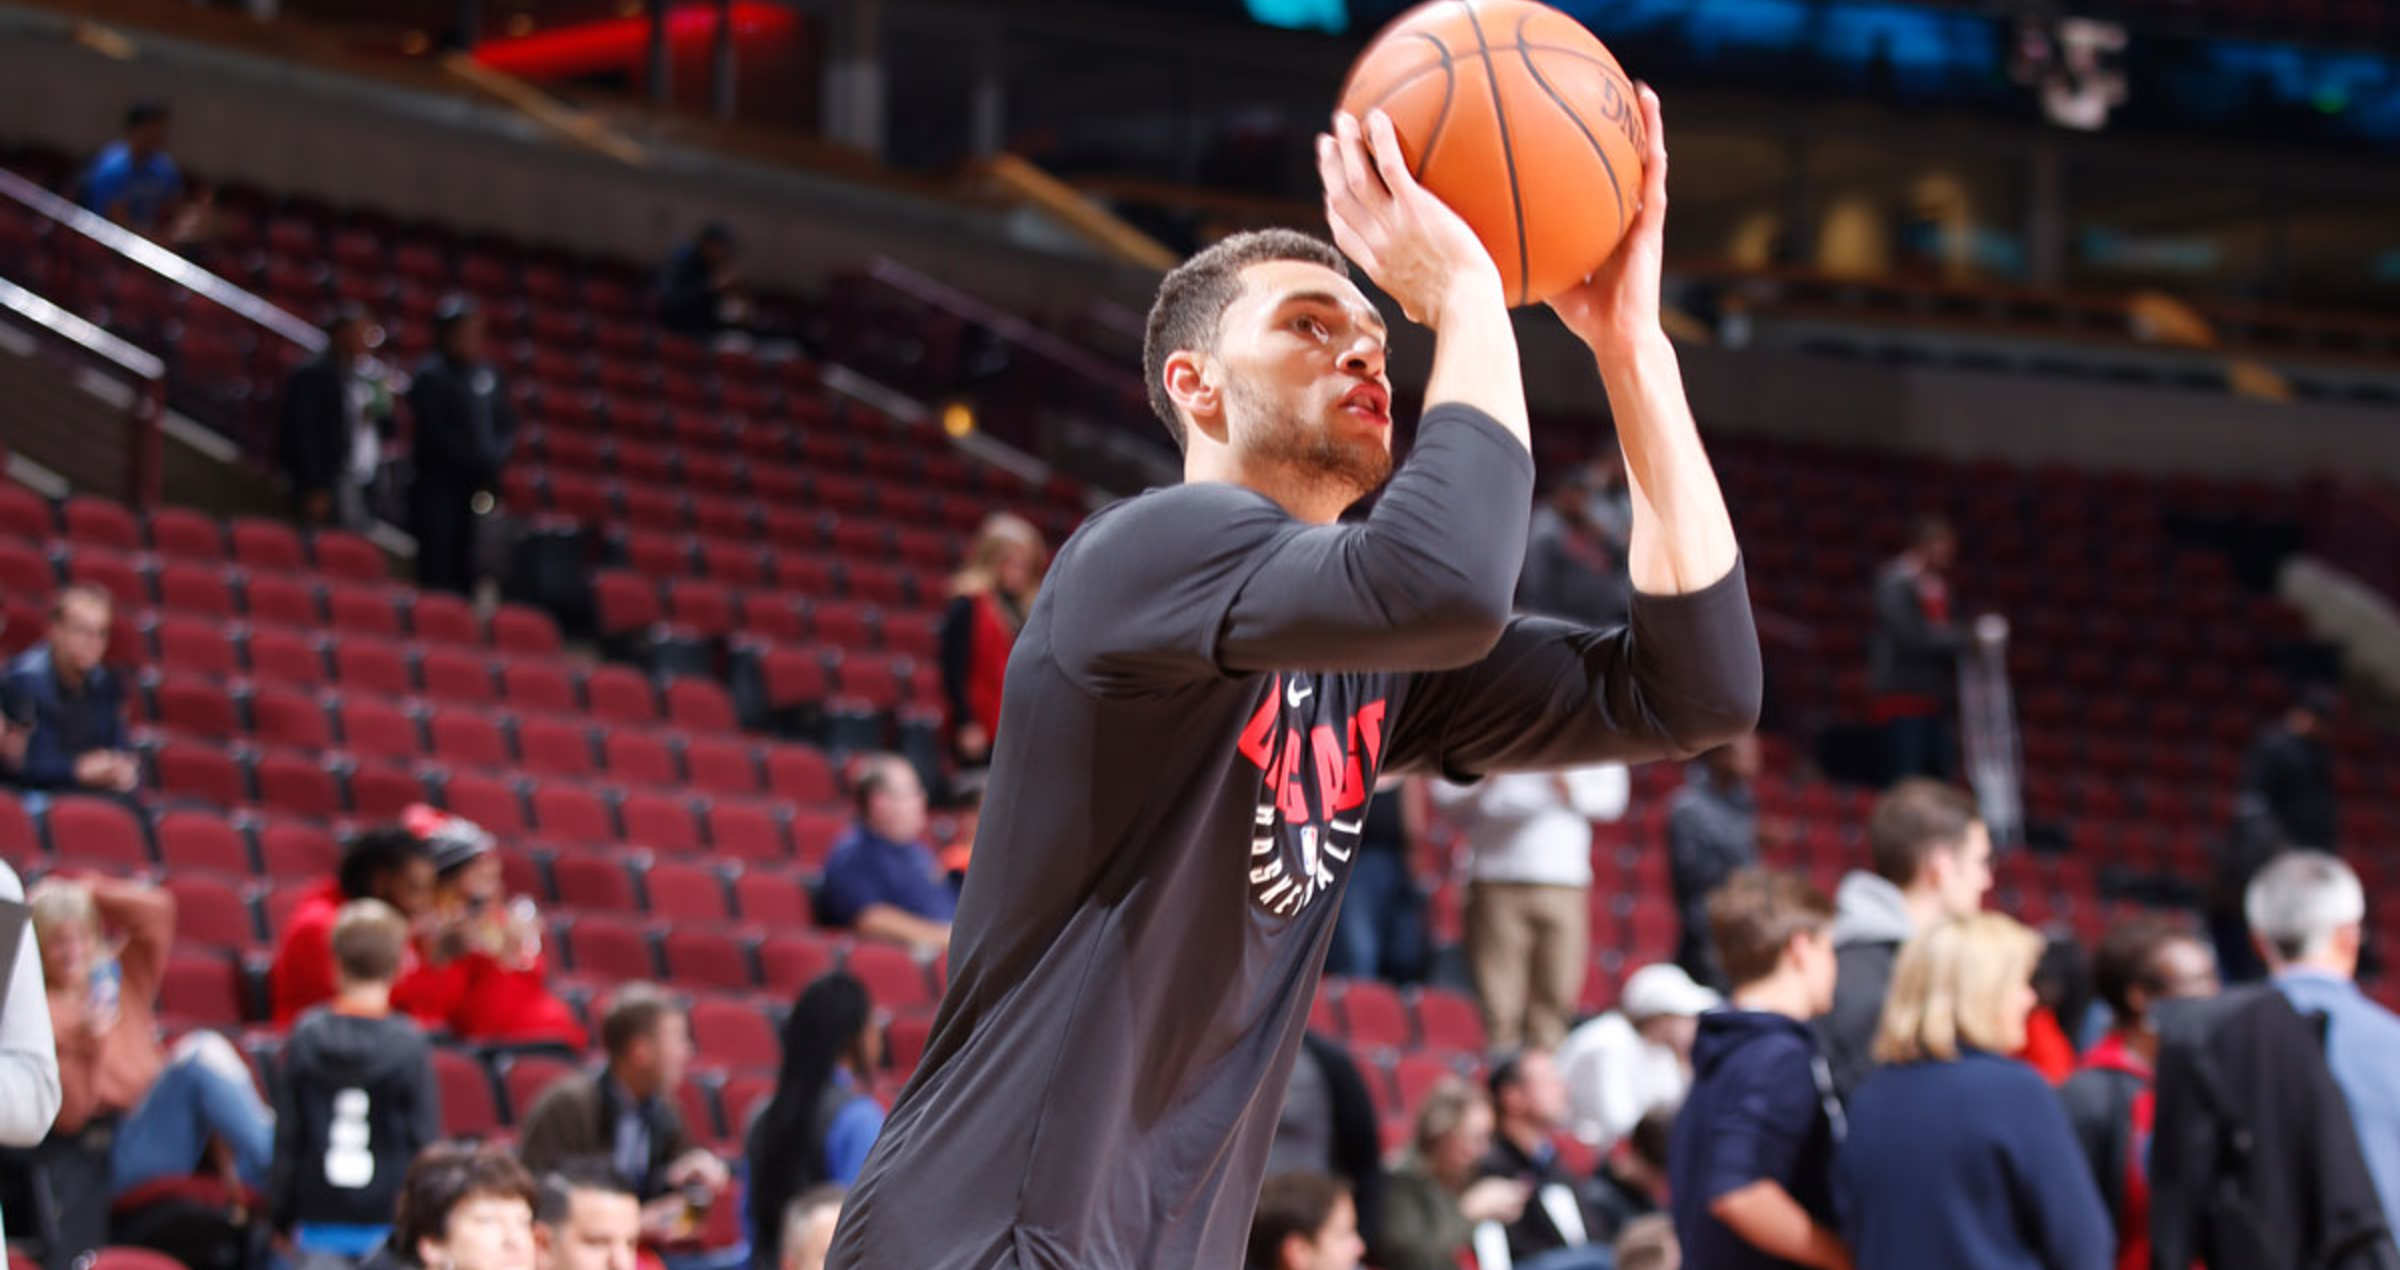 Zach Lavine of the Chicago Bulls shooting the ball in pregame warm ups, October 28, 2017 at the United Center, Chicago, IL.